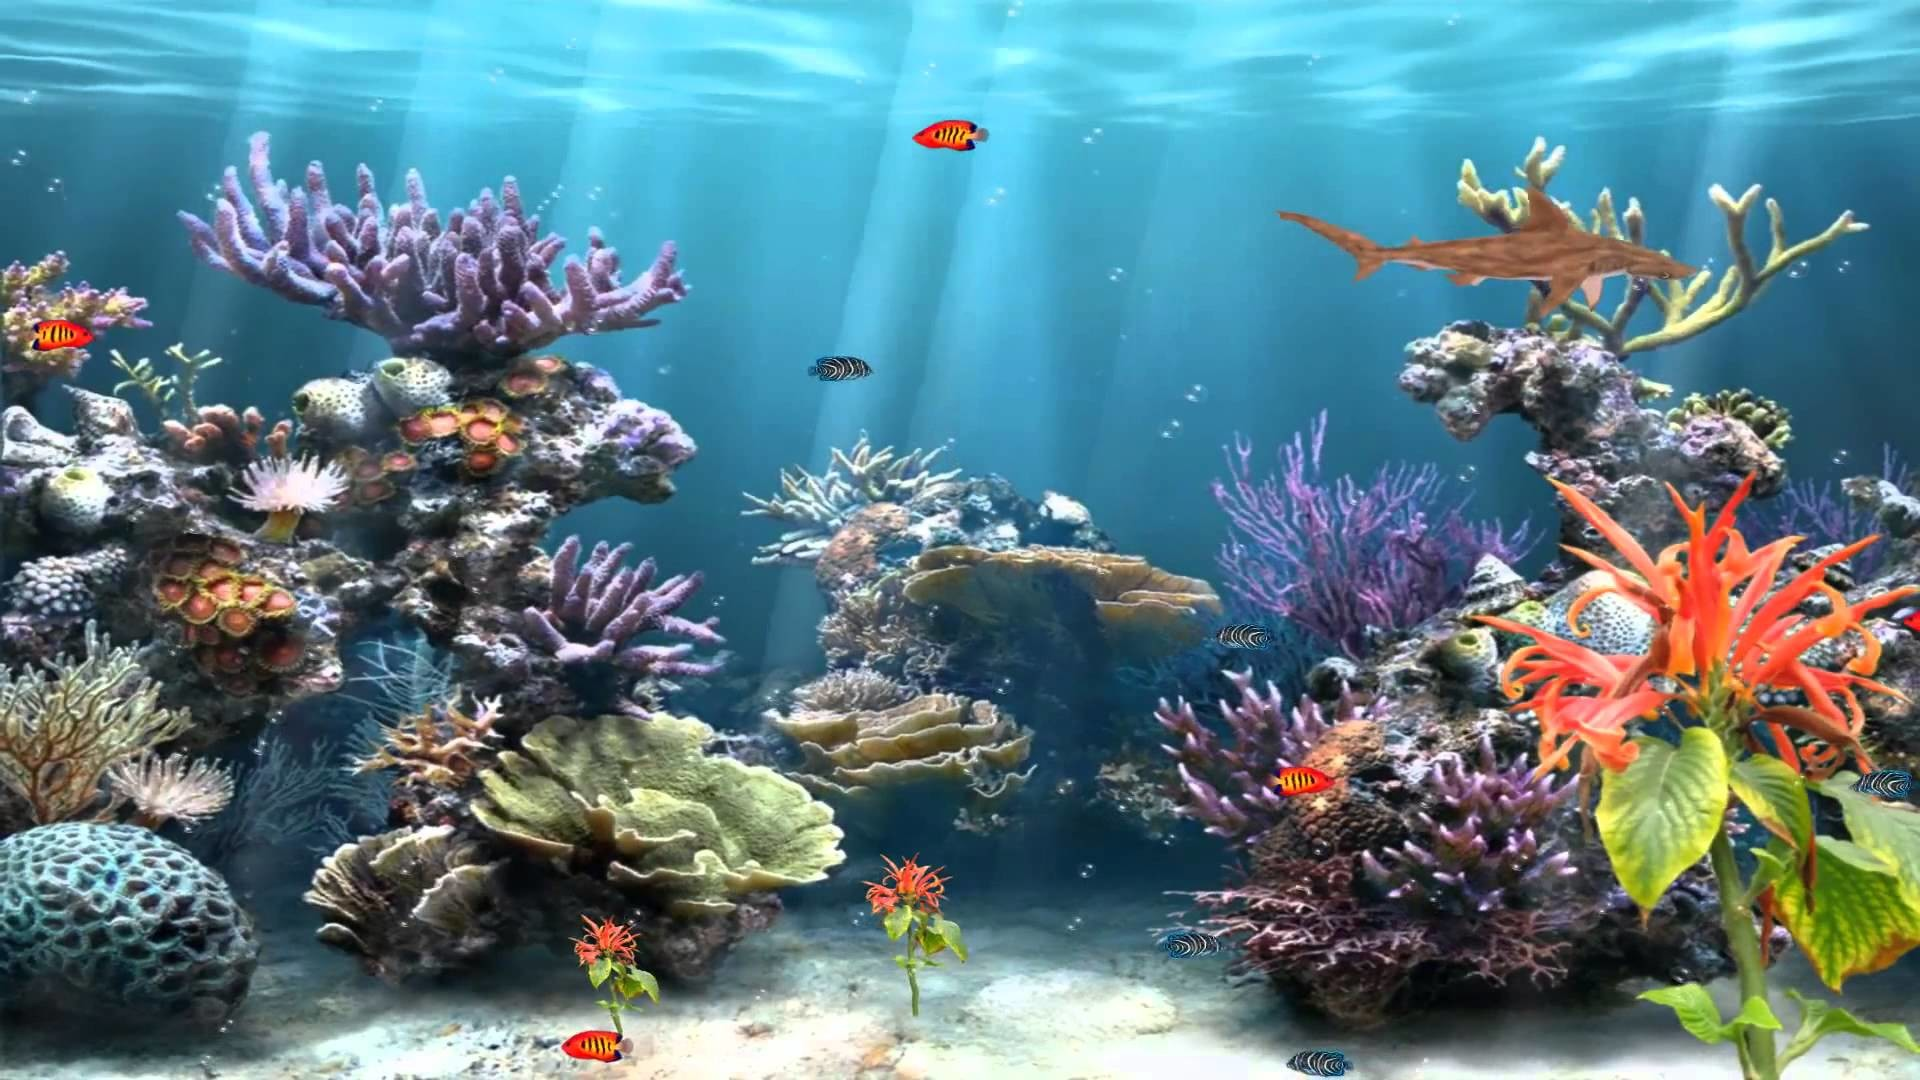 Coral reef backgrounds 54 images for Fish aquarium background